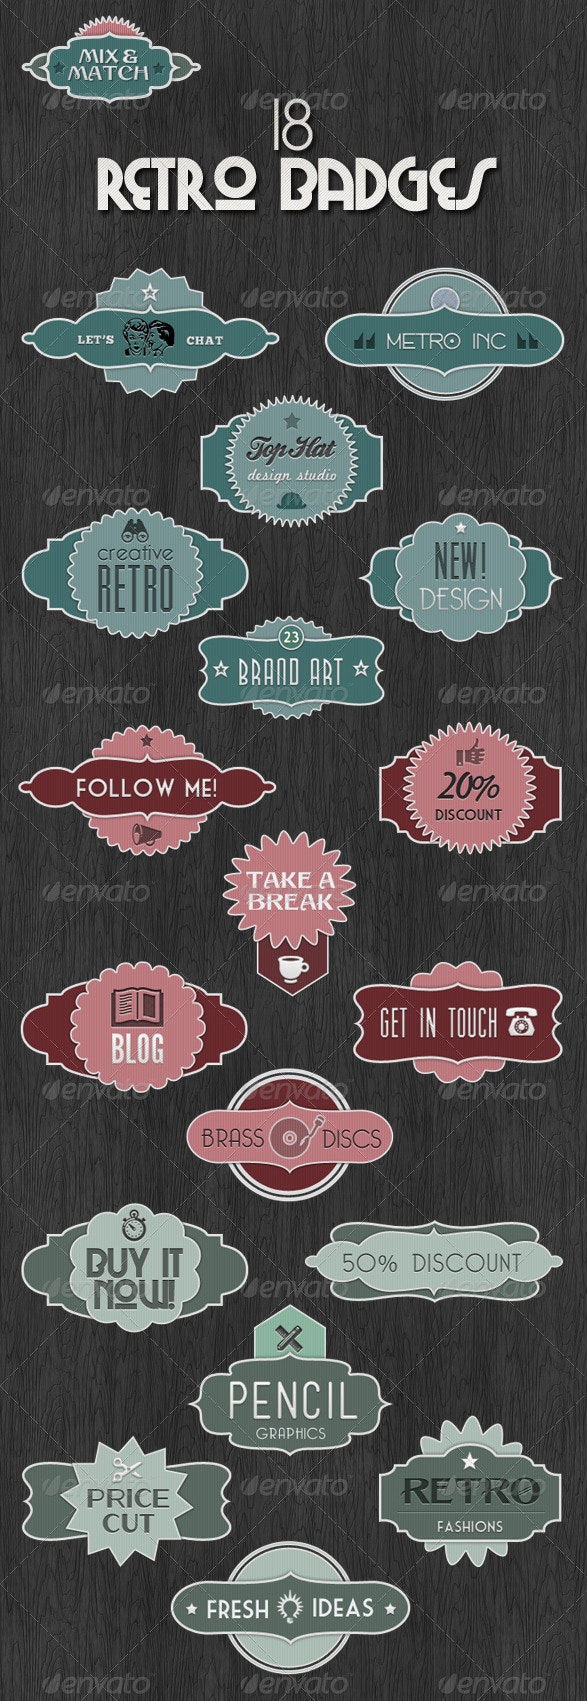 18 Retro Badges - Mix & Match Vintage Labels - Badges & Stickers Web Elements